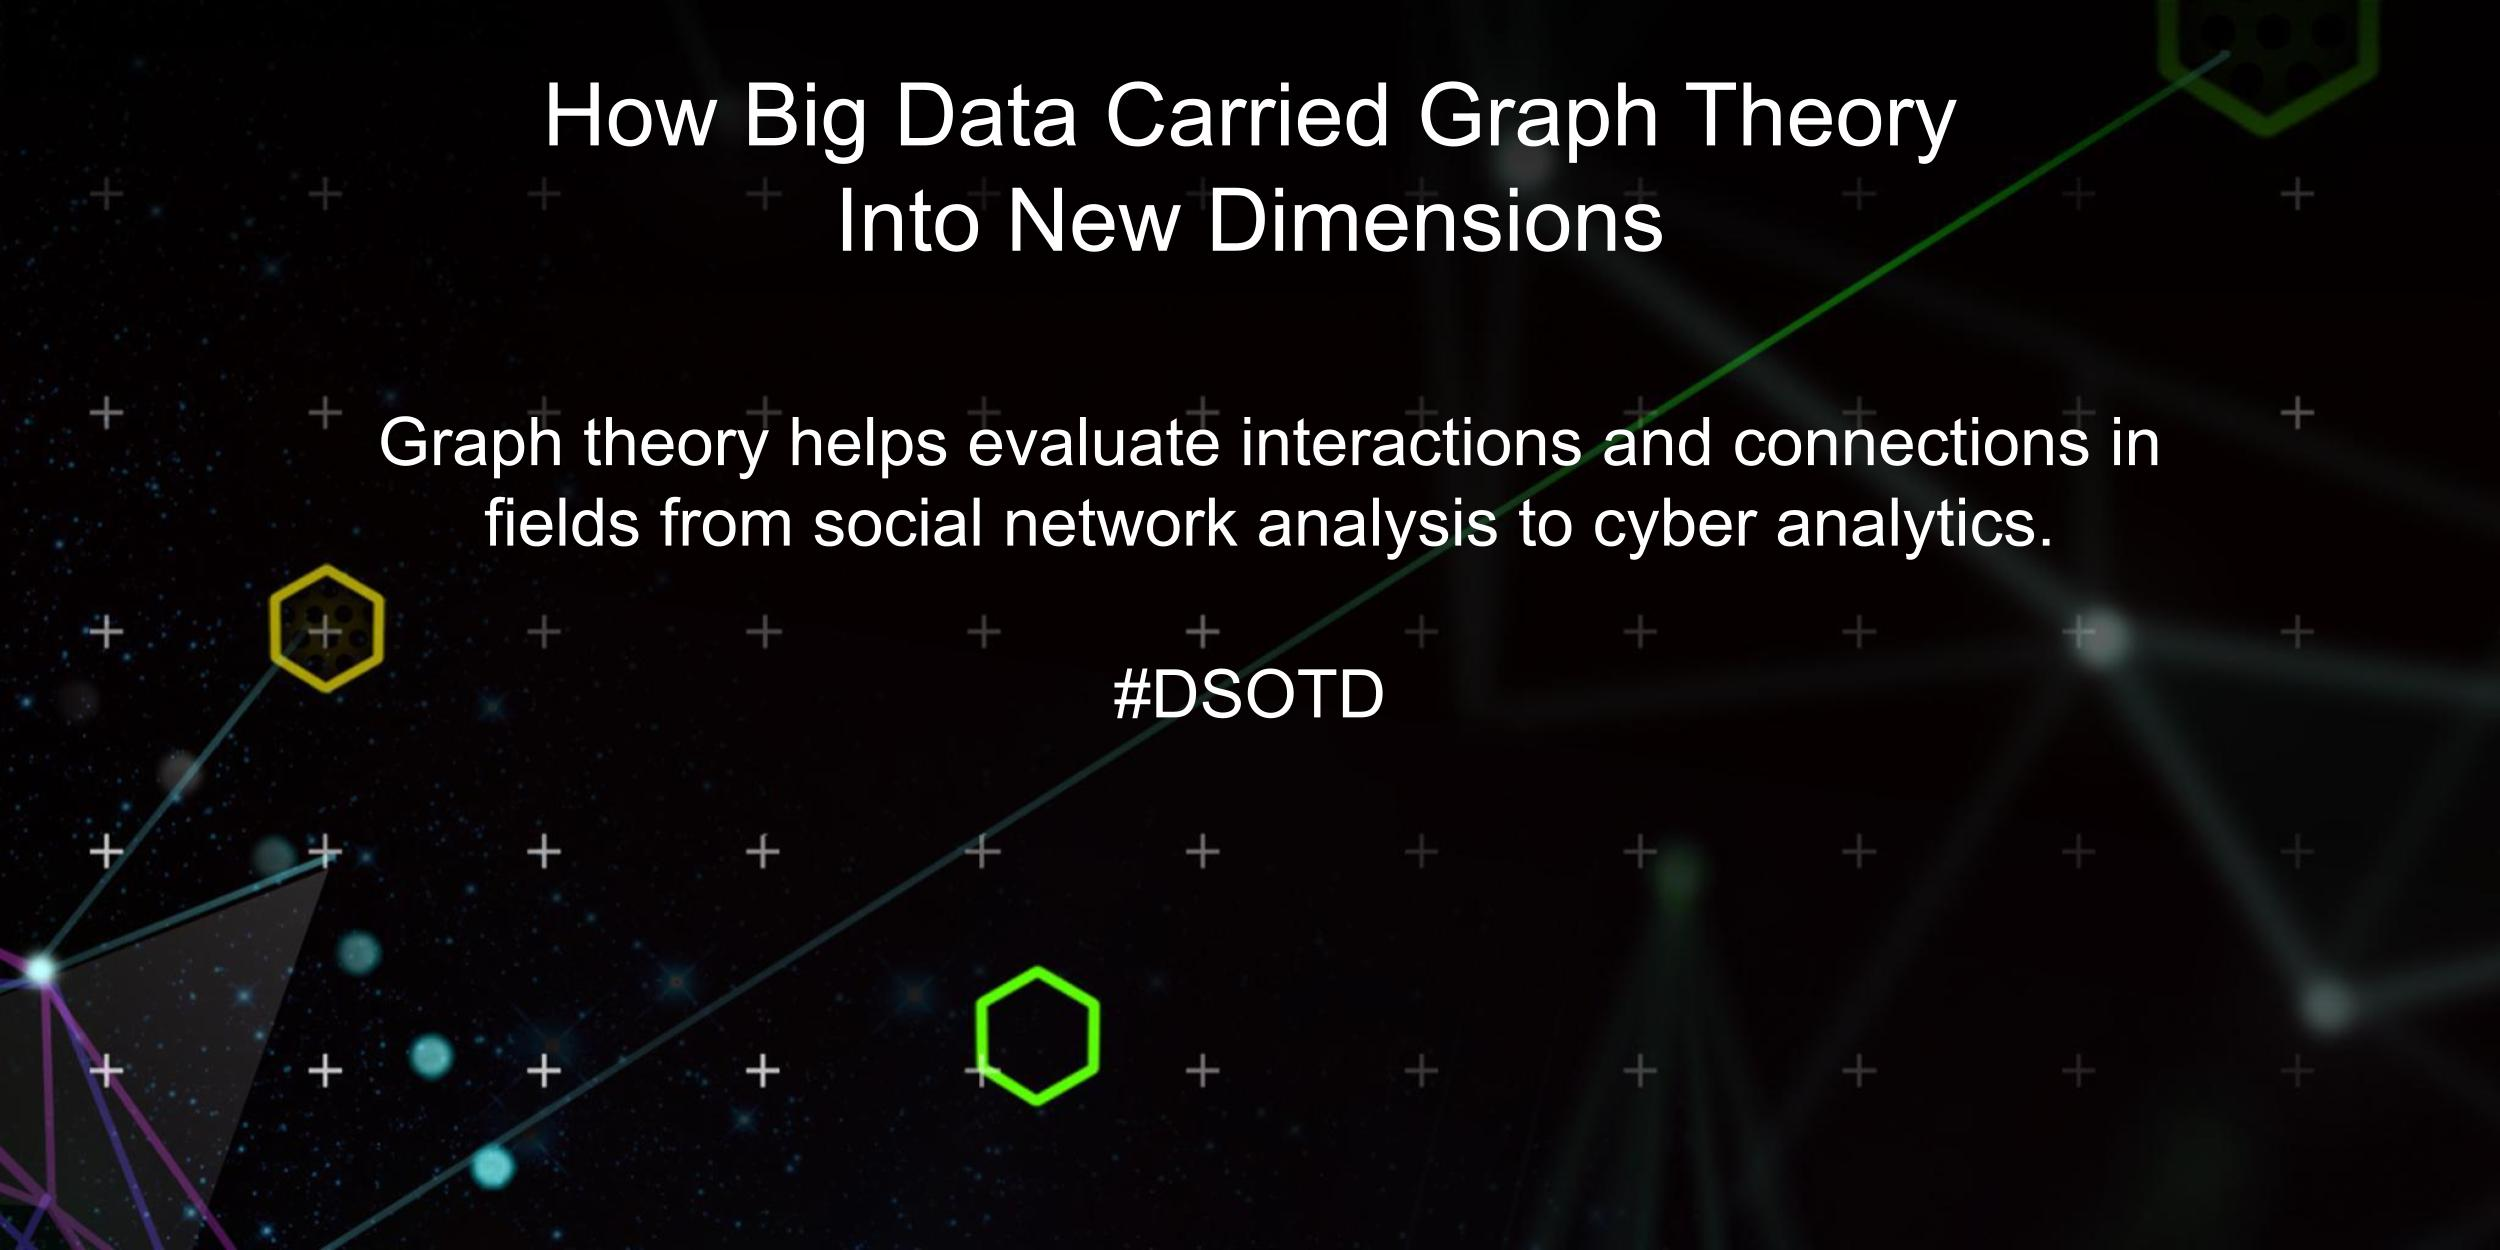 Graph theory helps evaluate interactions and connections in fields from social network analysis to cyber analytics.